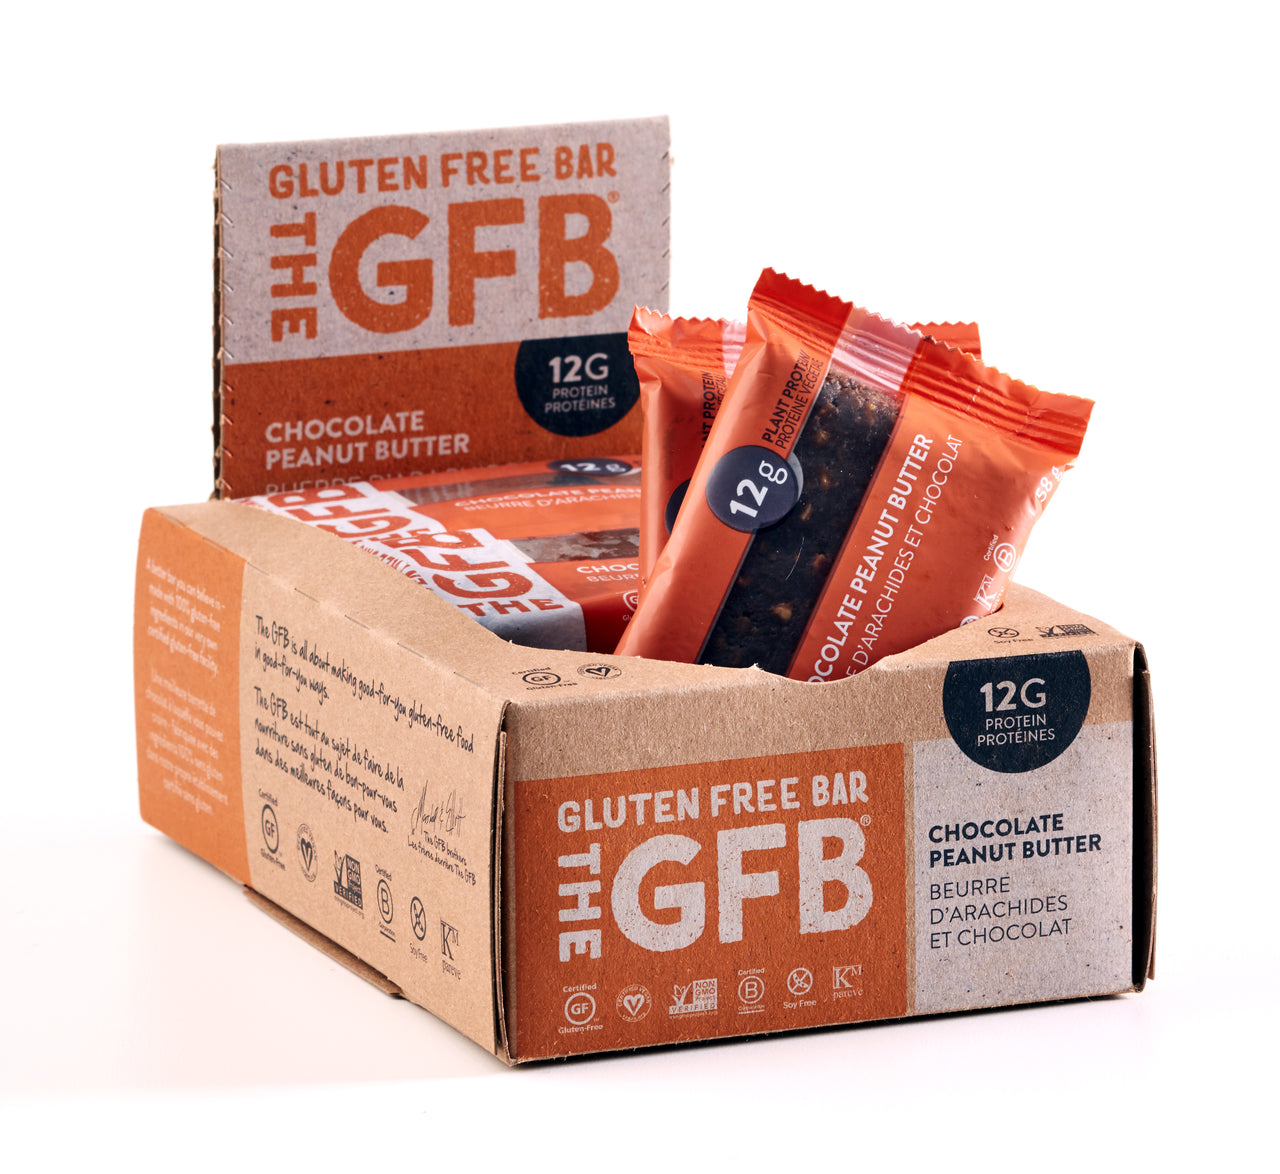 The GFB Gluten Free Bars [12 Pack]